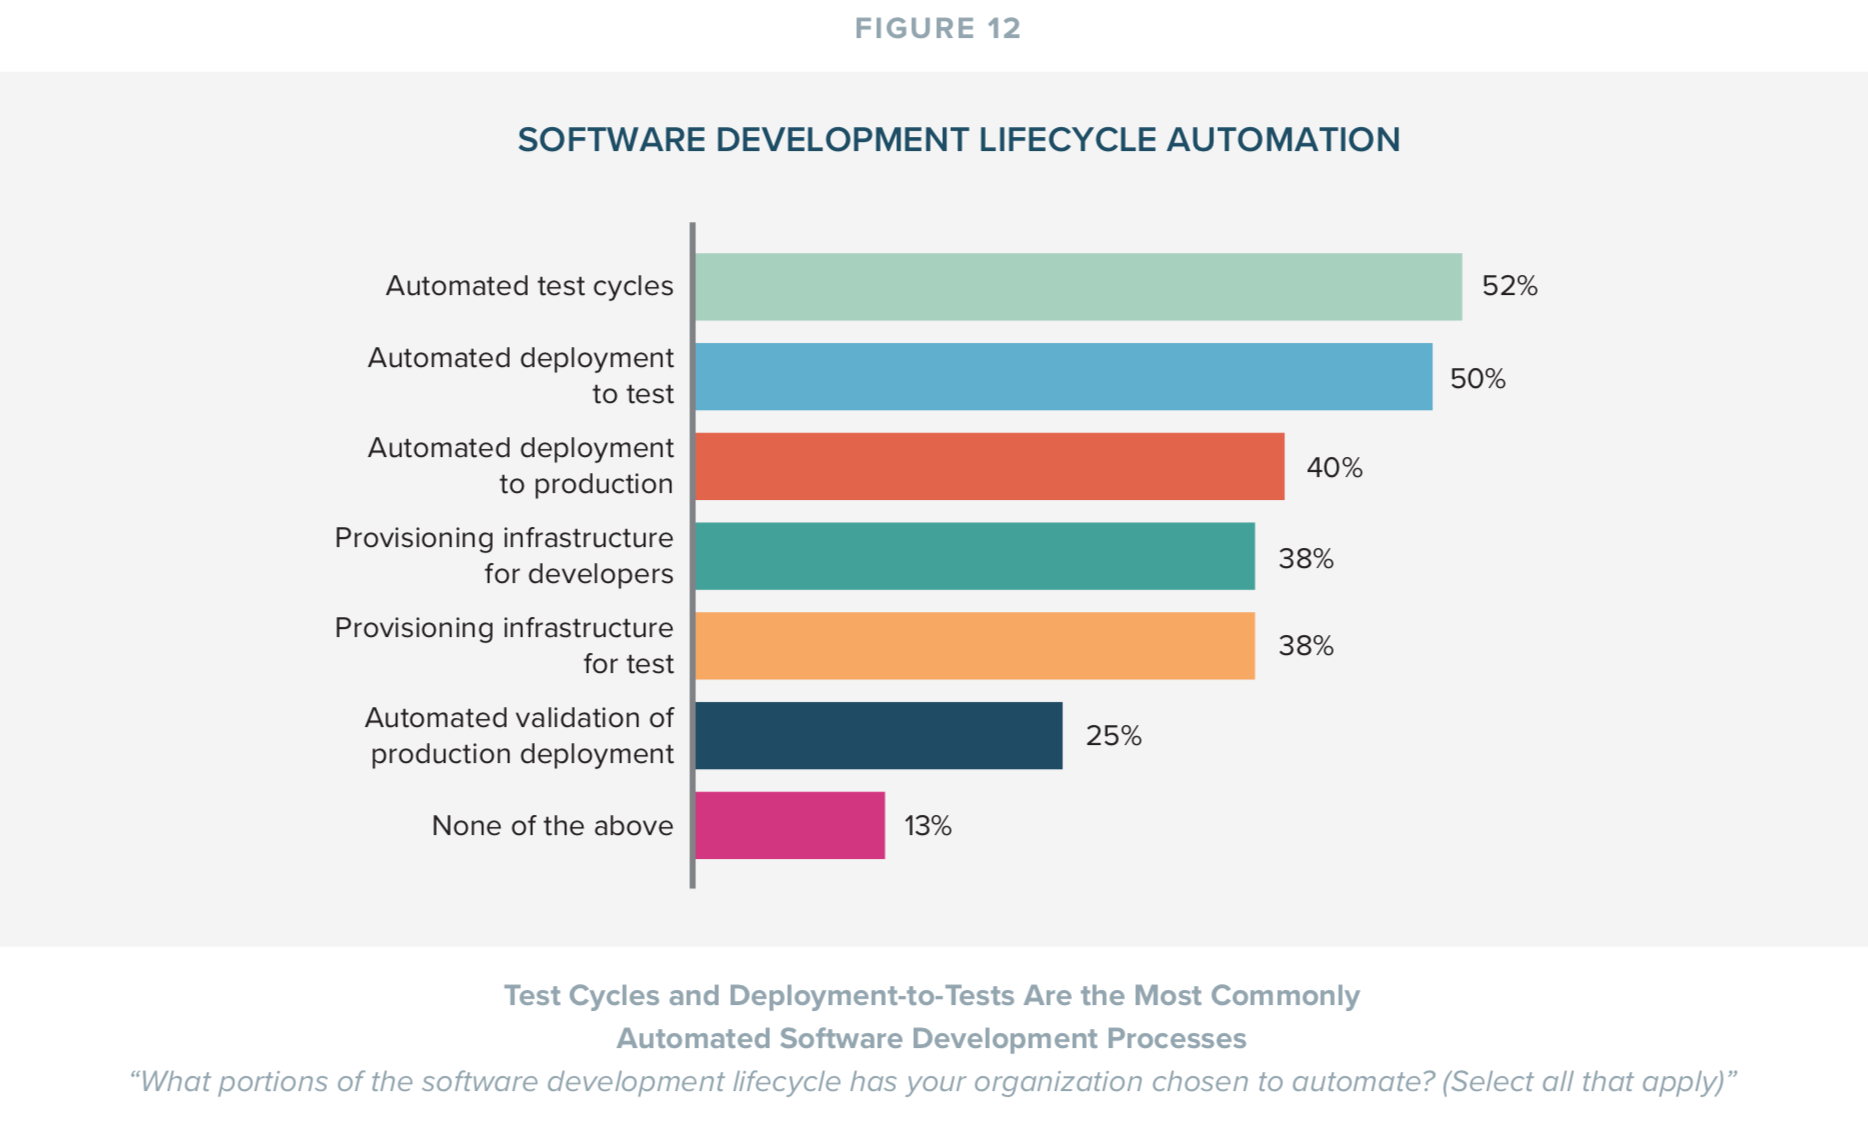 Software Development Lifecycle Automation